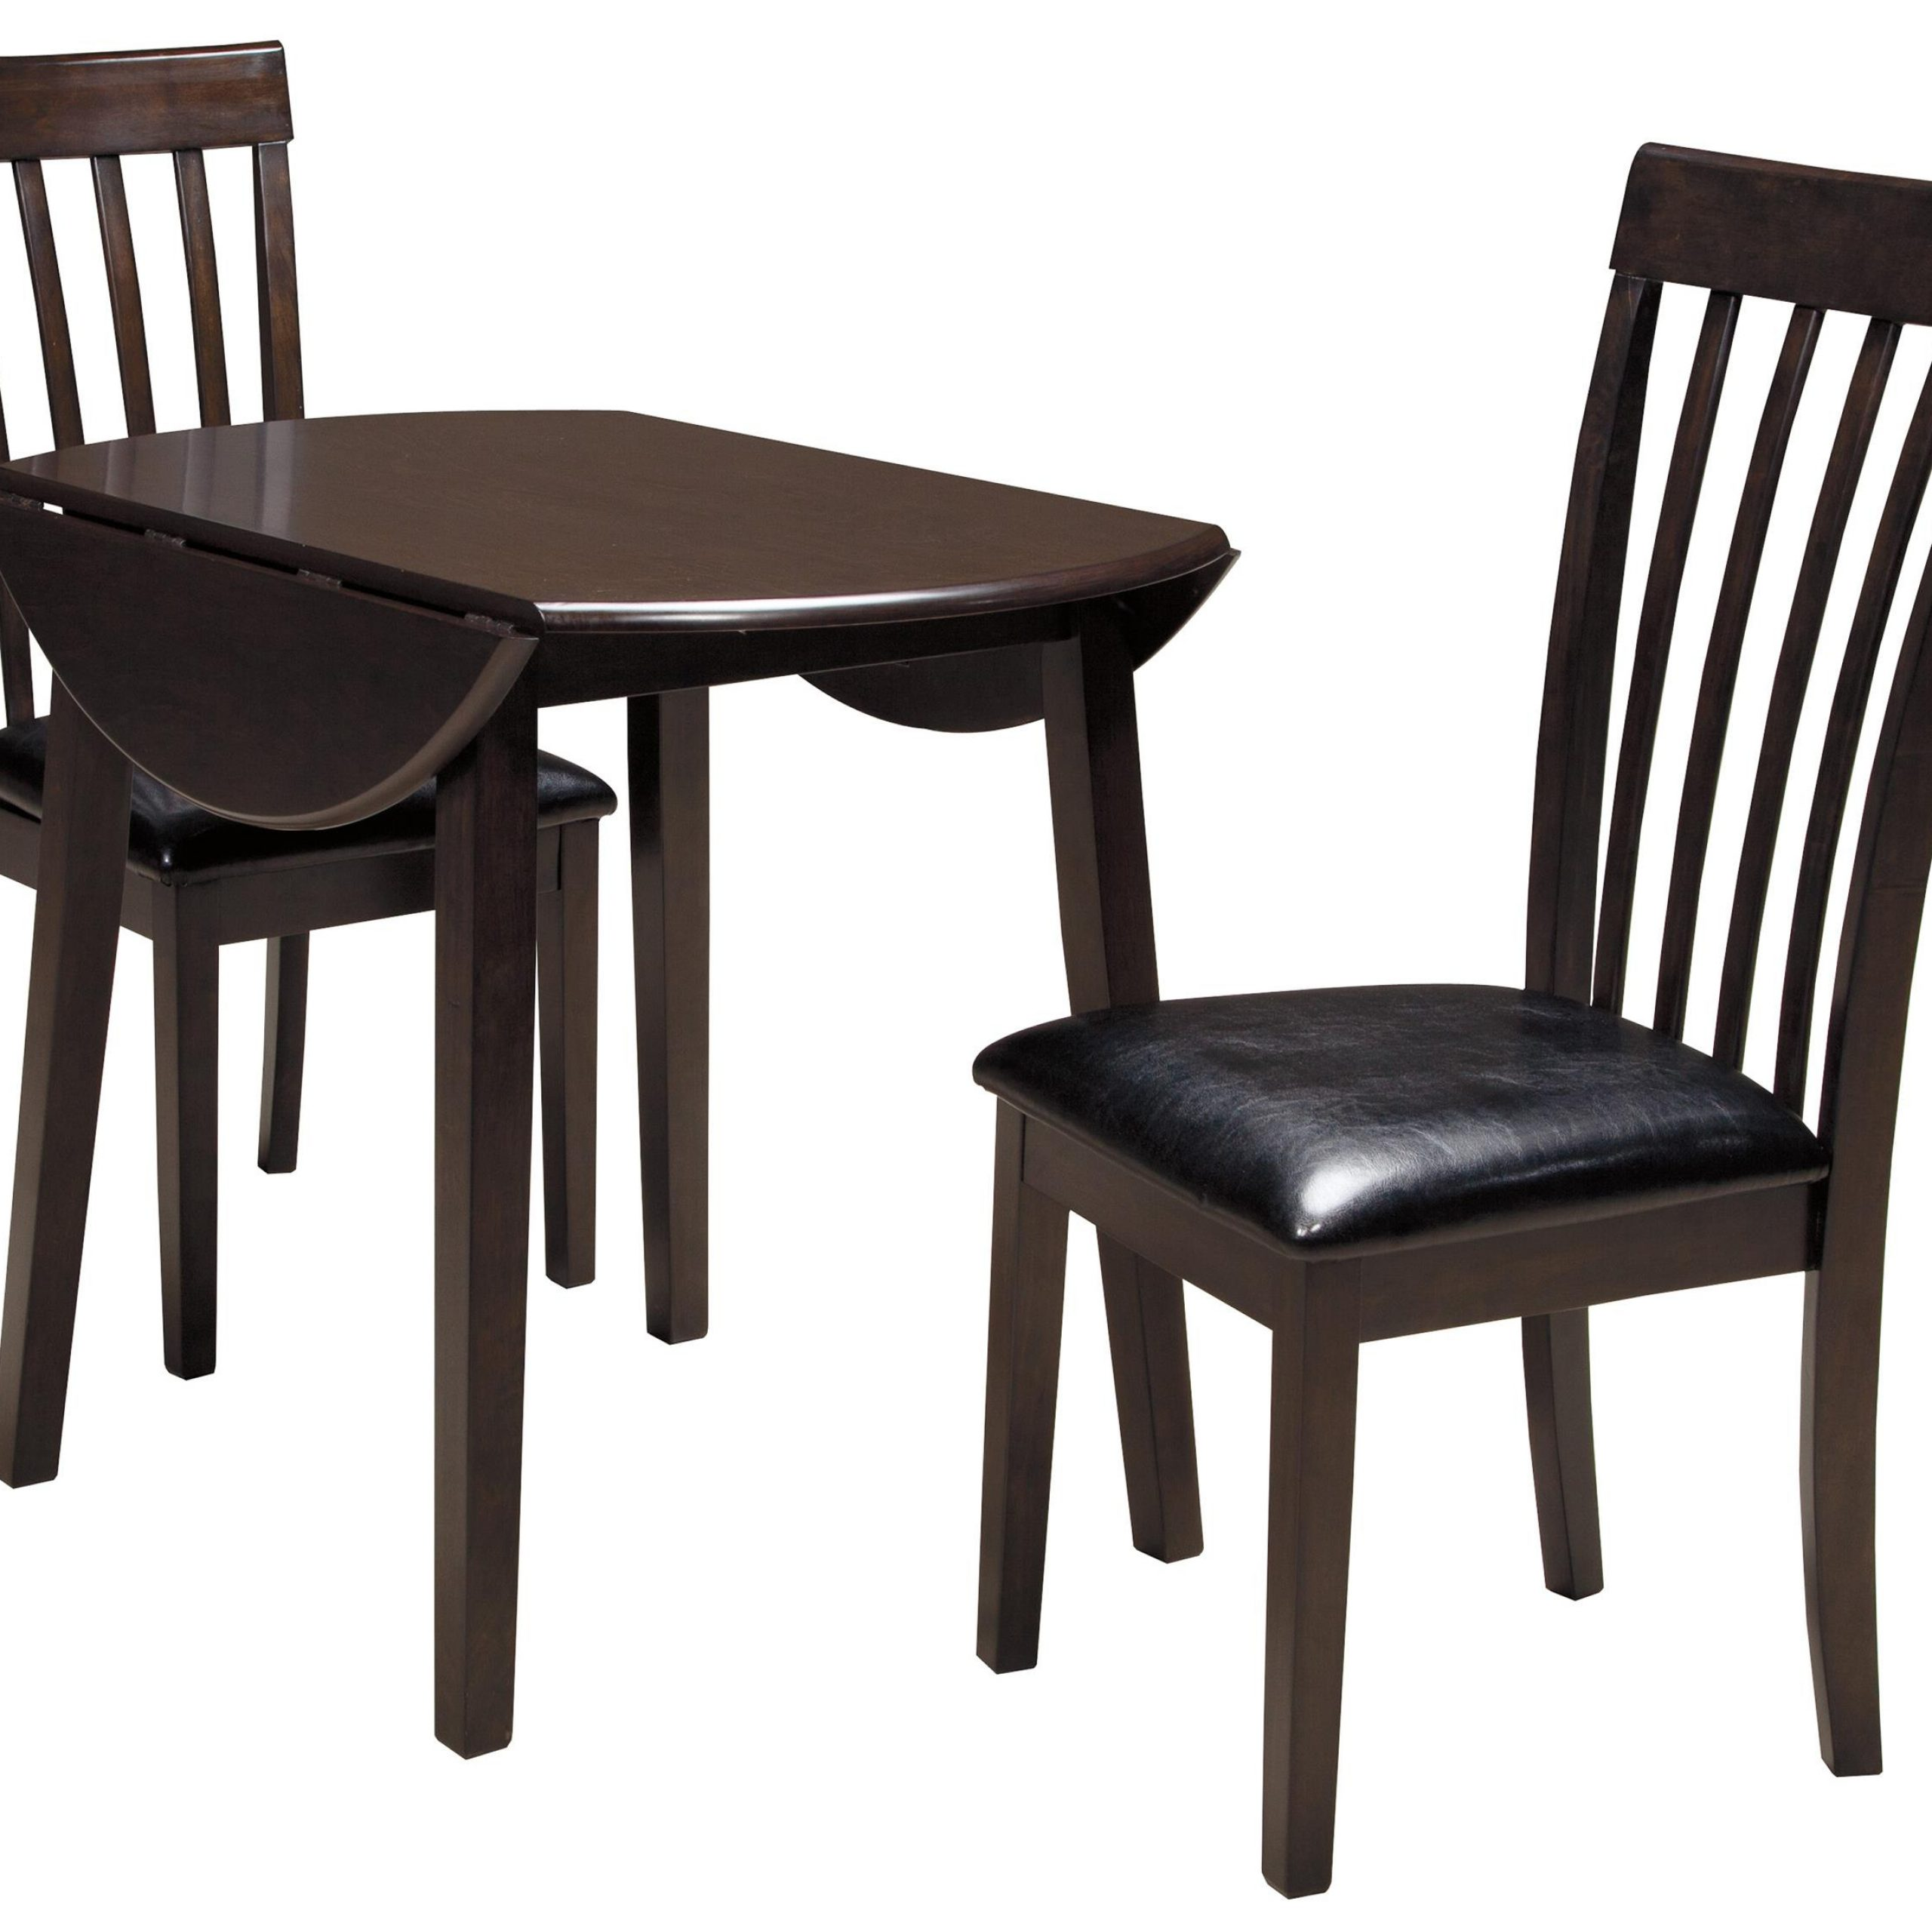 3 Piece Round Drop Leaf Table Setsignature Design Regarding Recent Transitional 4 Seating Drop Leaf Casual Dining Tables (View 20 of 30)